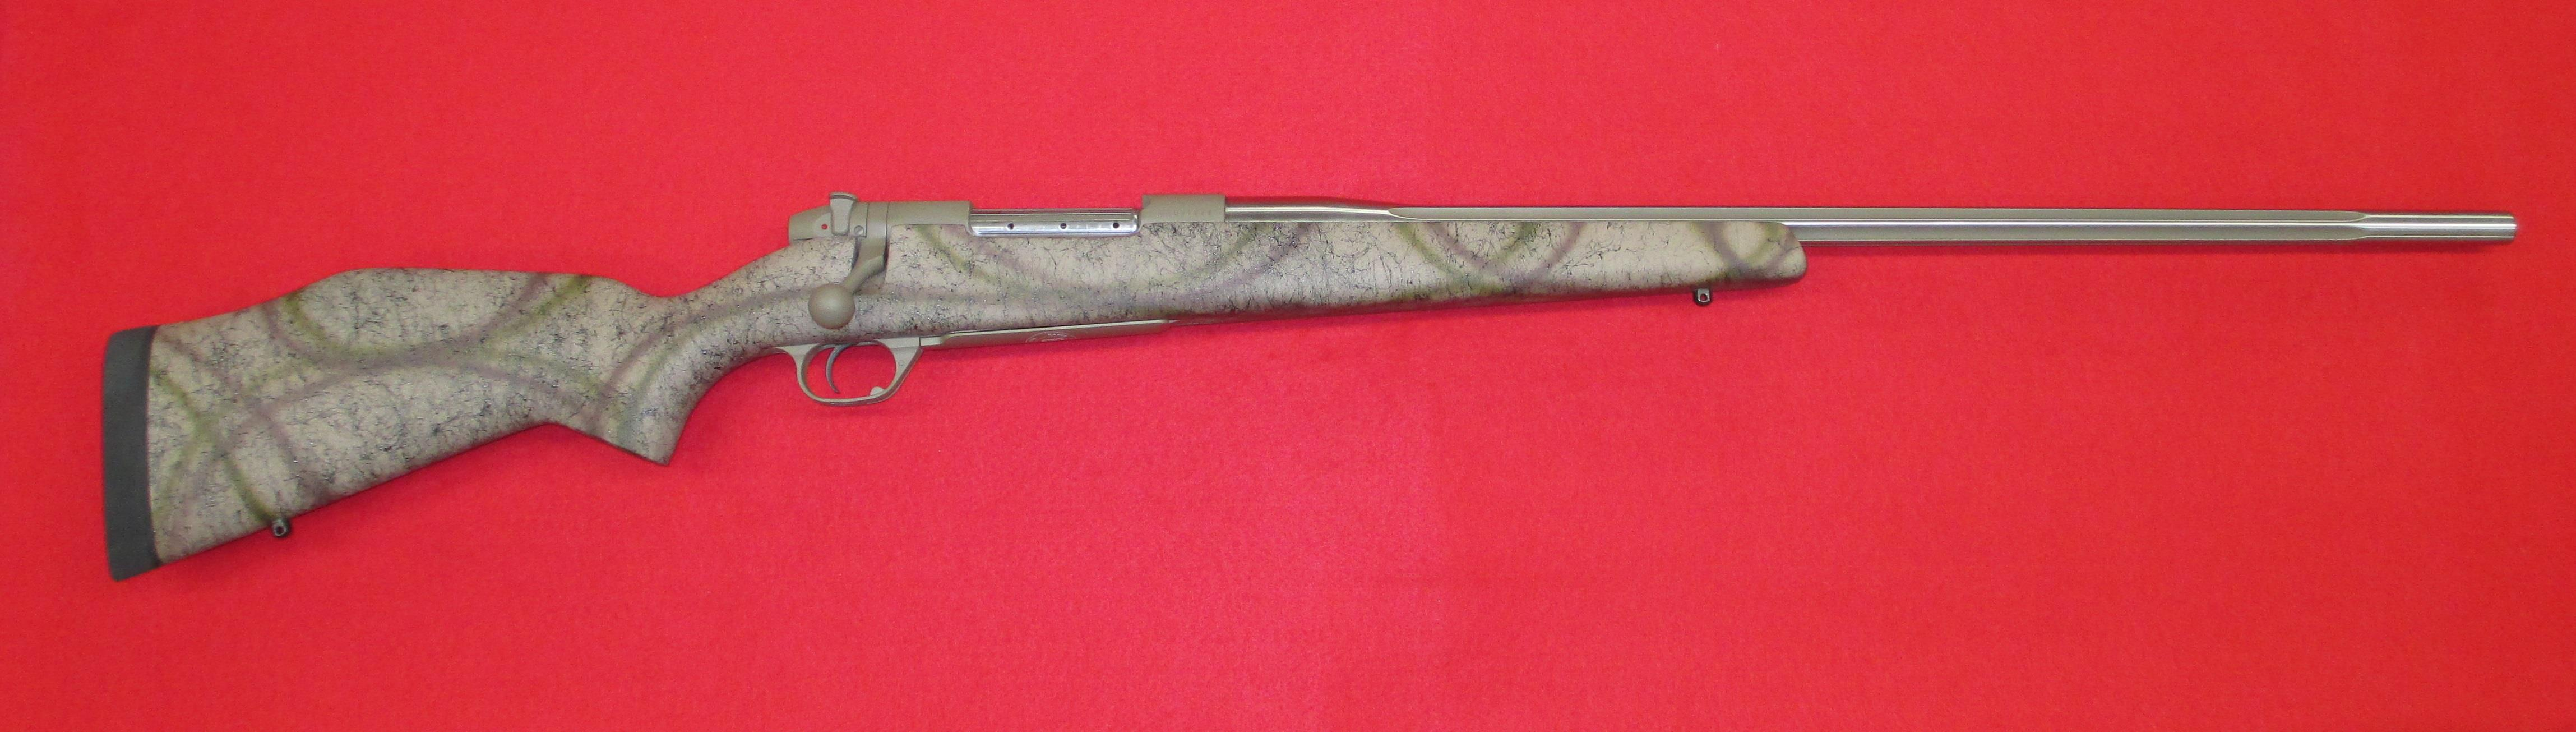 Weatherby Mk V, 300 WBY Mag  Guns > Rifles > Weatherby Rifles > Sporting